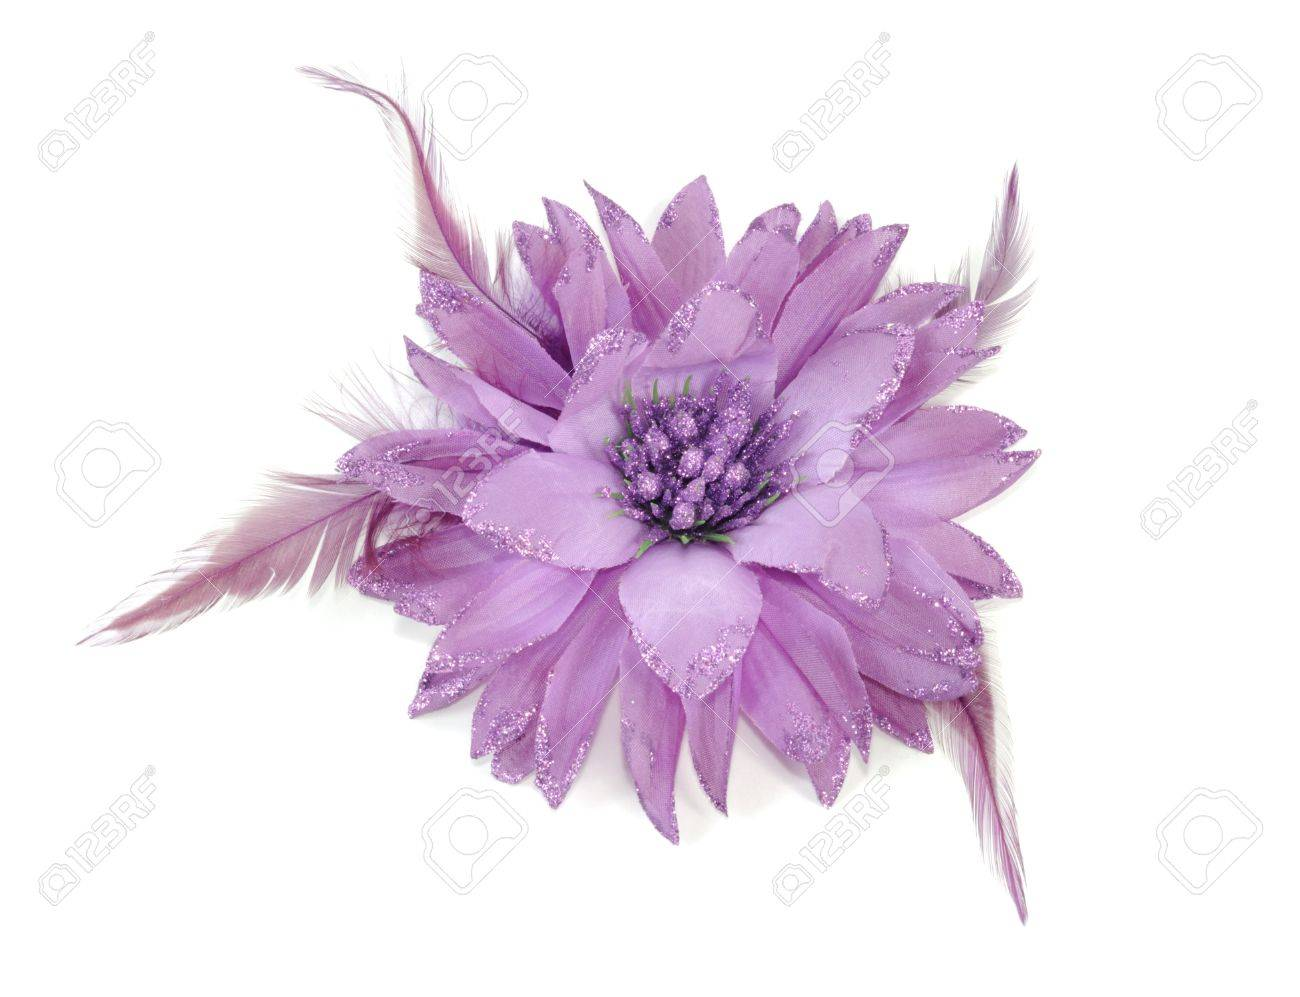 Flower hair band on isolated on a white background Stock Photo - 9740182